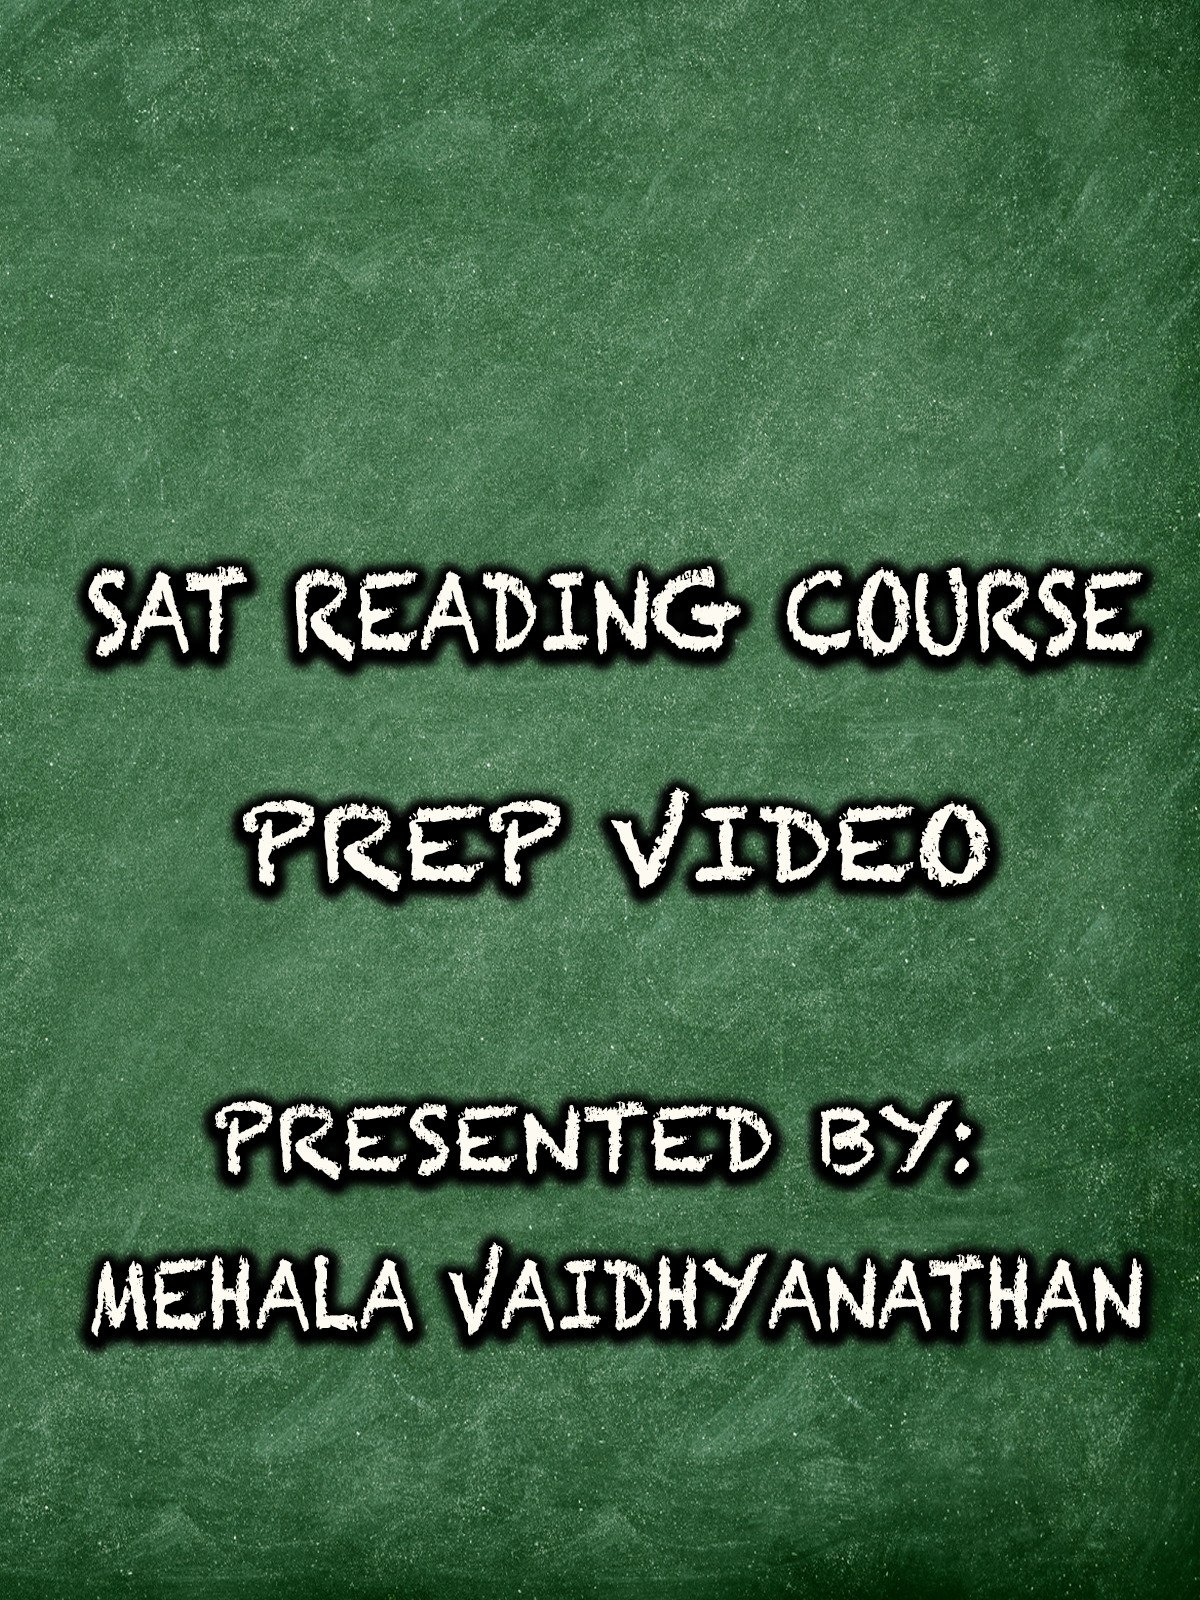 SAT Reading Course Prep Video Presented by: Mehala Vaidhyanathan